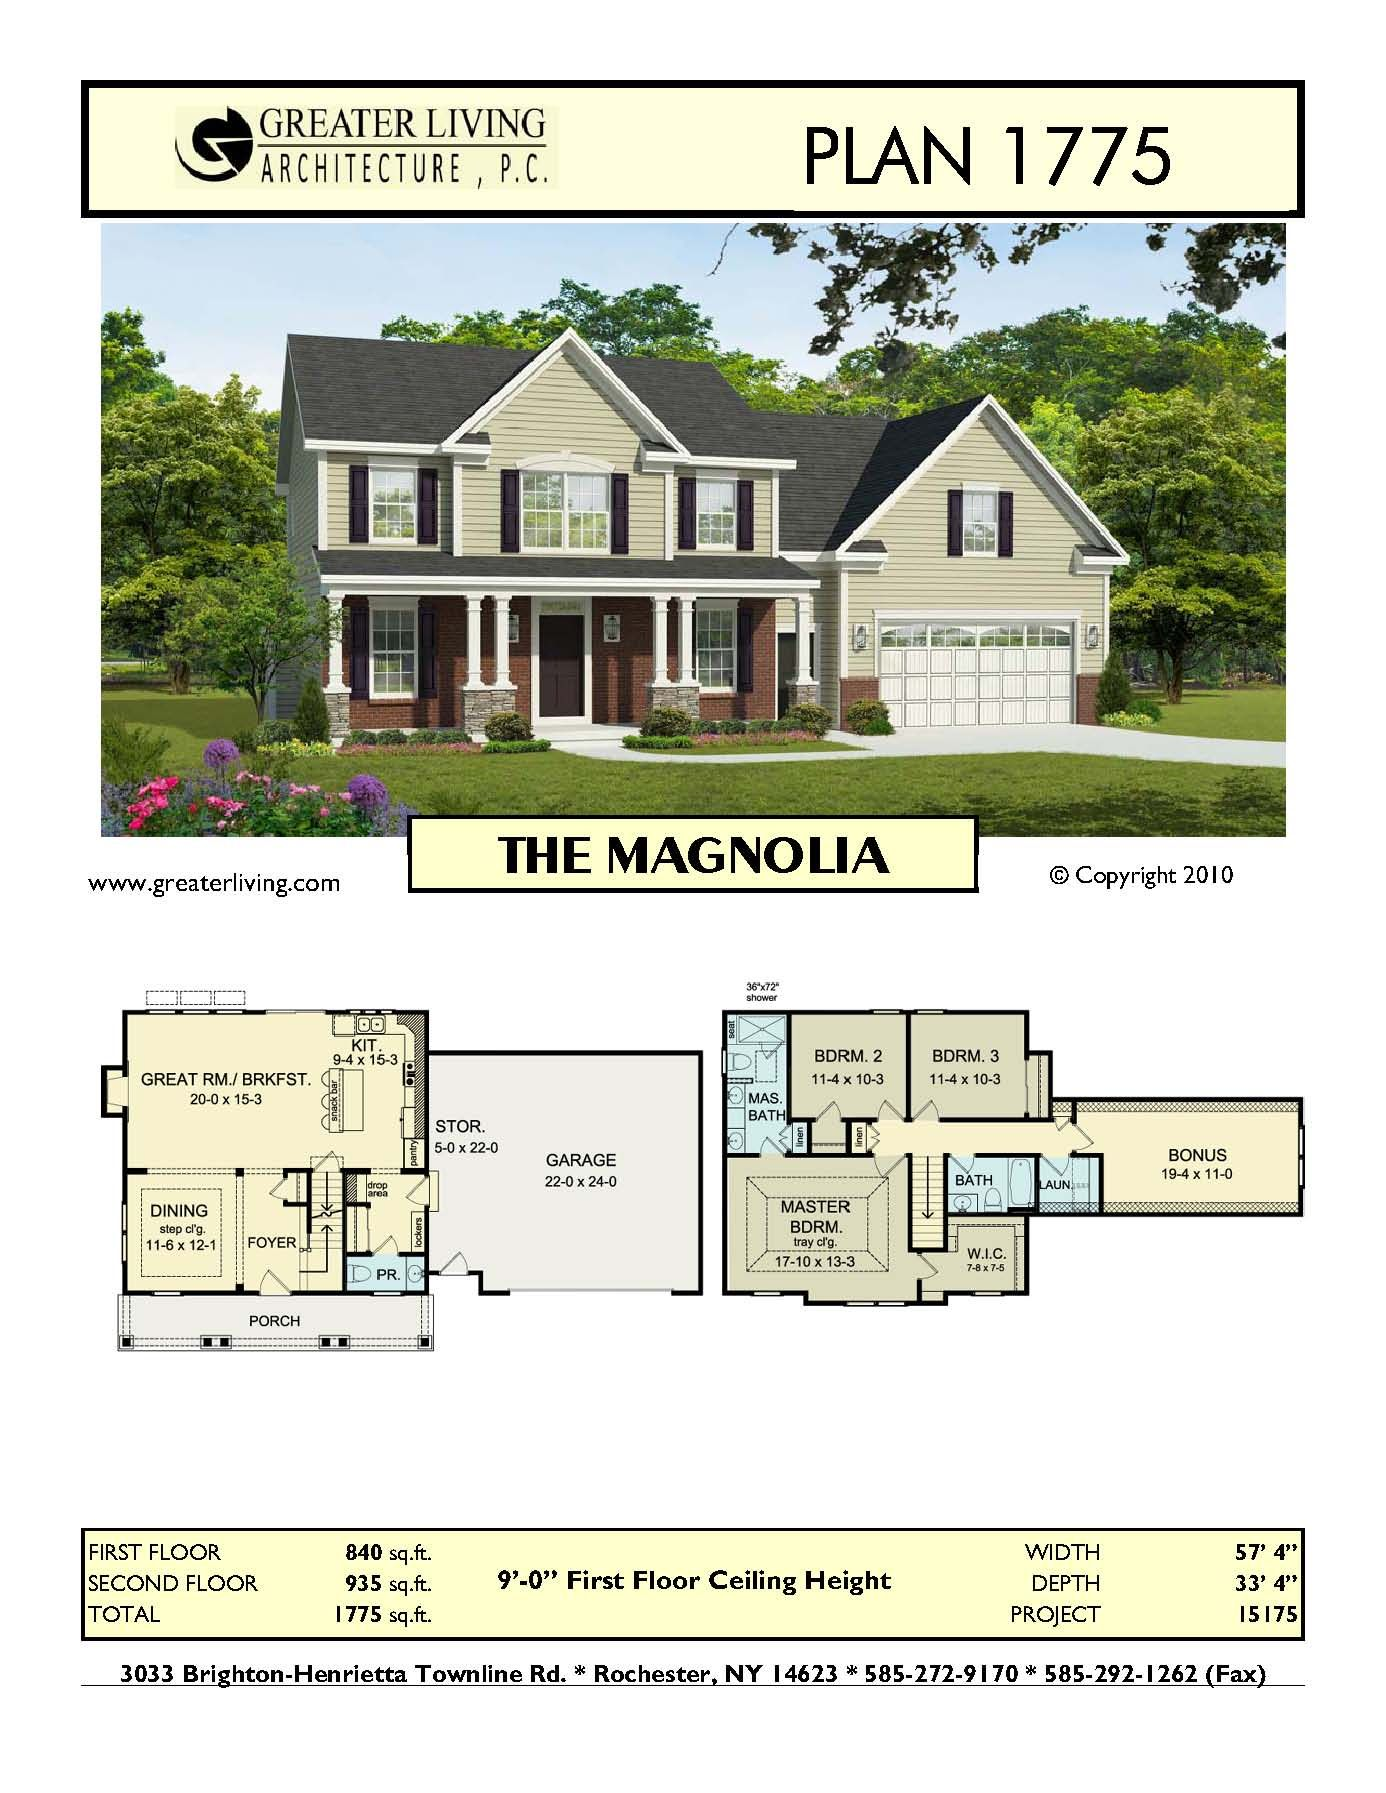 Plan 1775: THE MAGNOLIA   House Plans   Two Story House Plans   2 Story